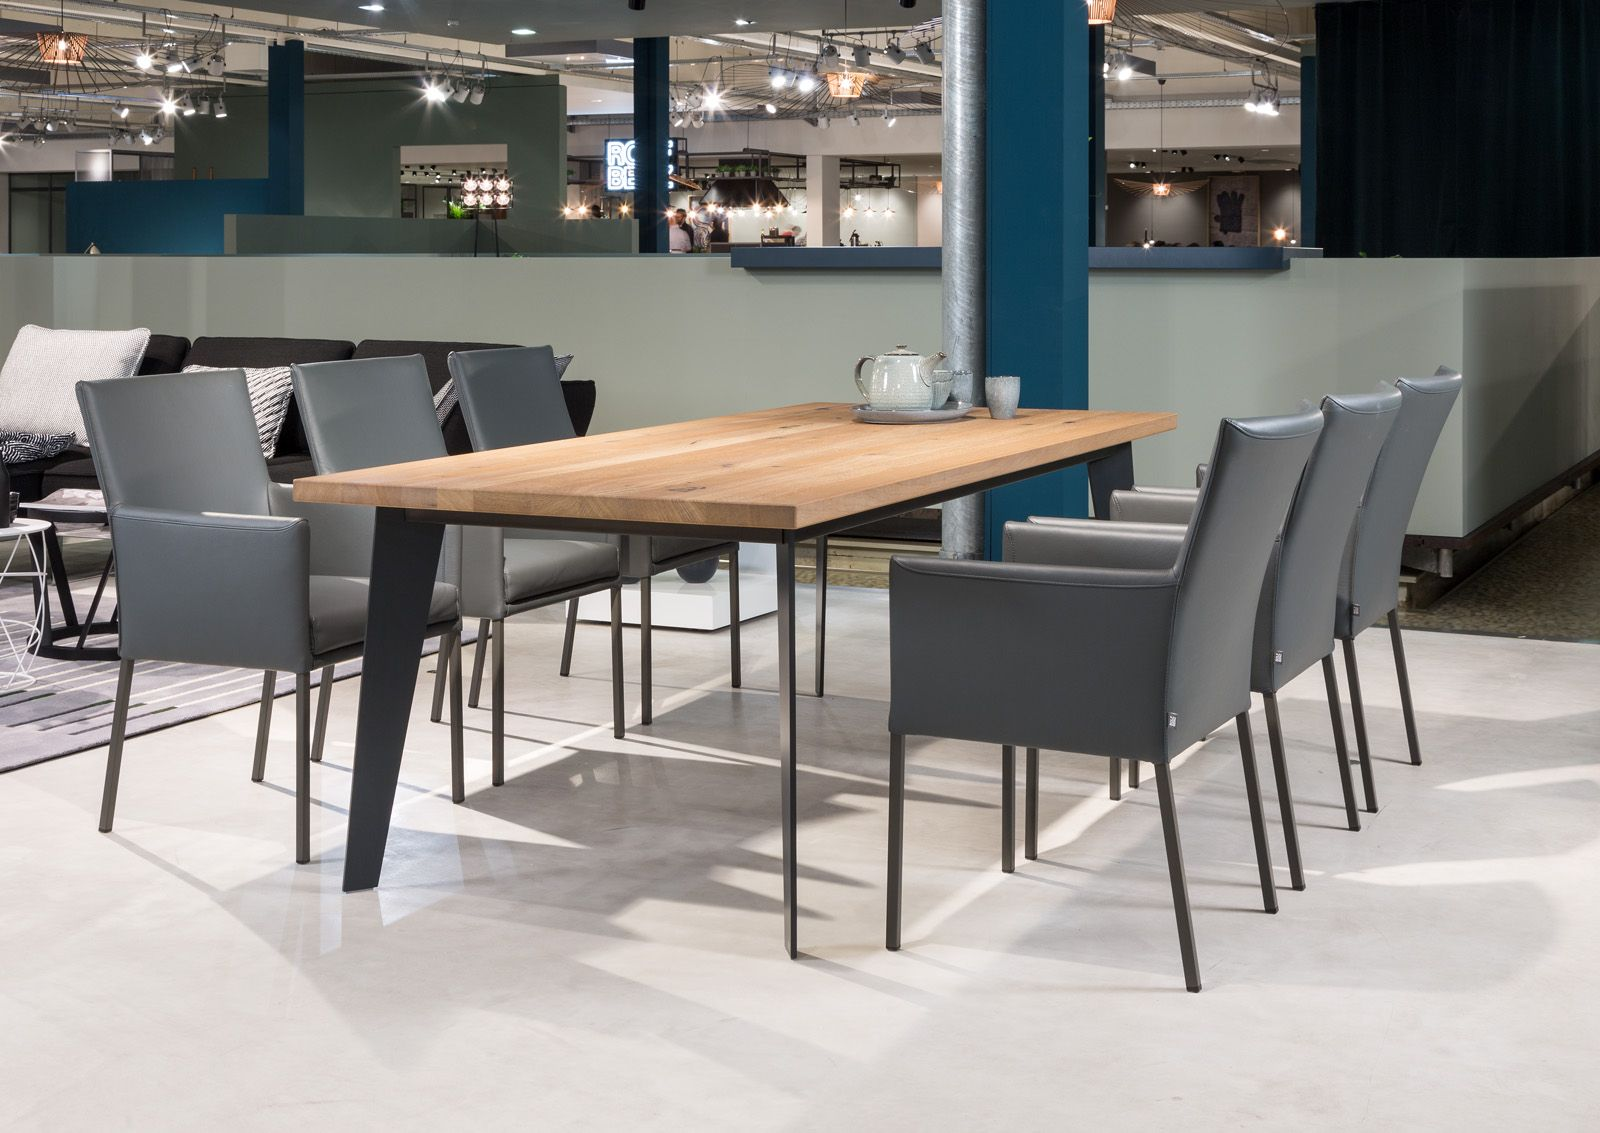 Esszimmer Rolf Benz The Rolf Benz 979 Rustic Table Culture In Any Diningroom